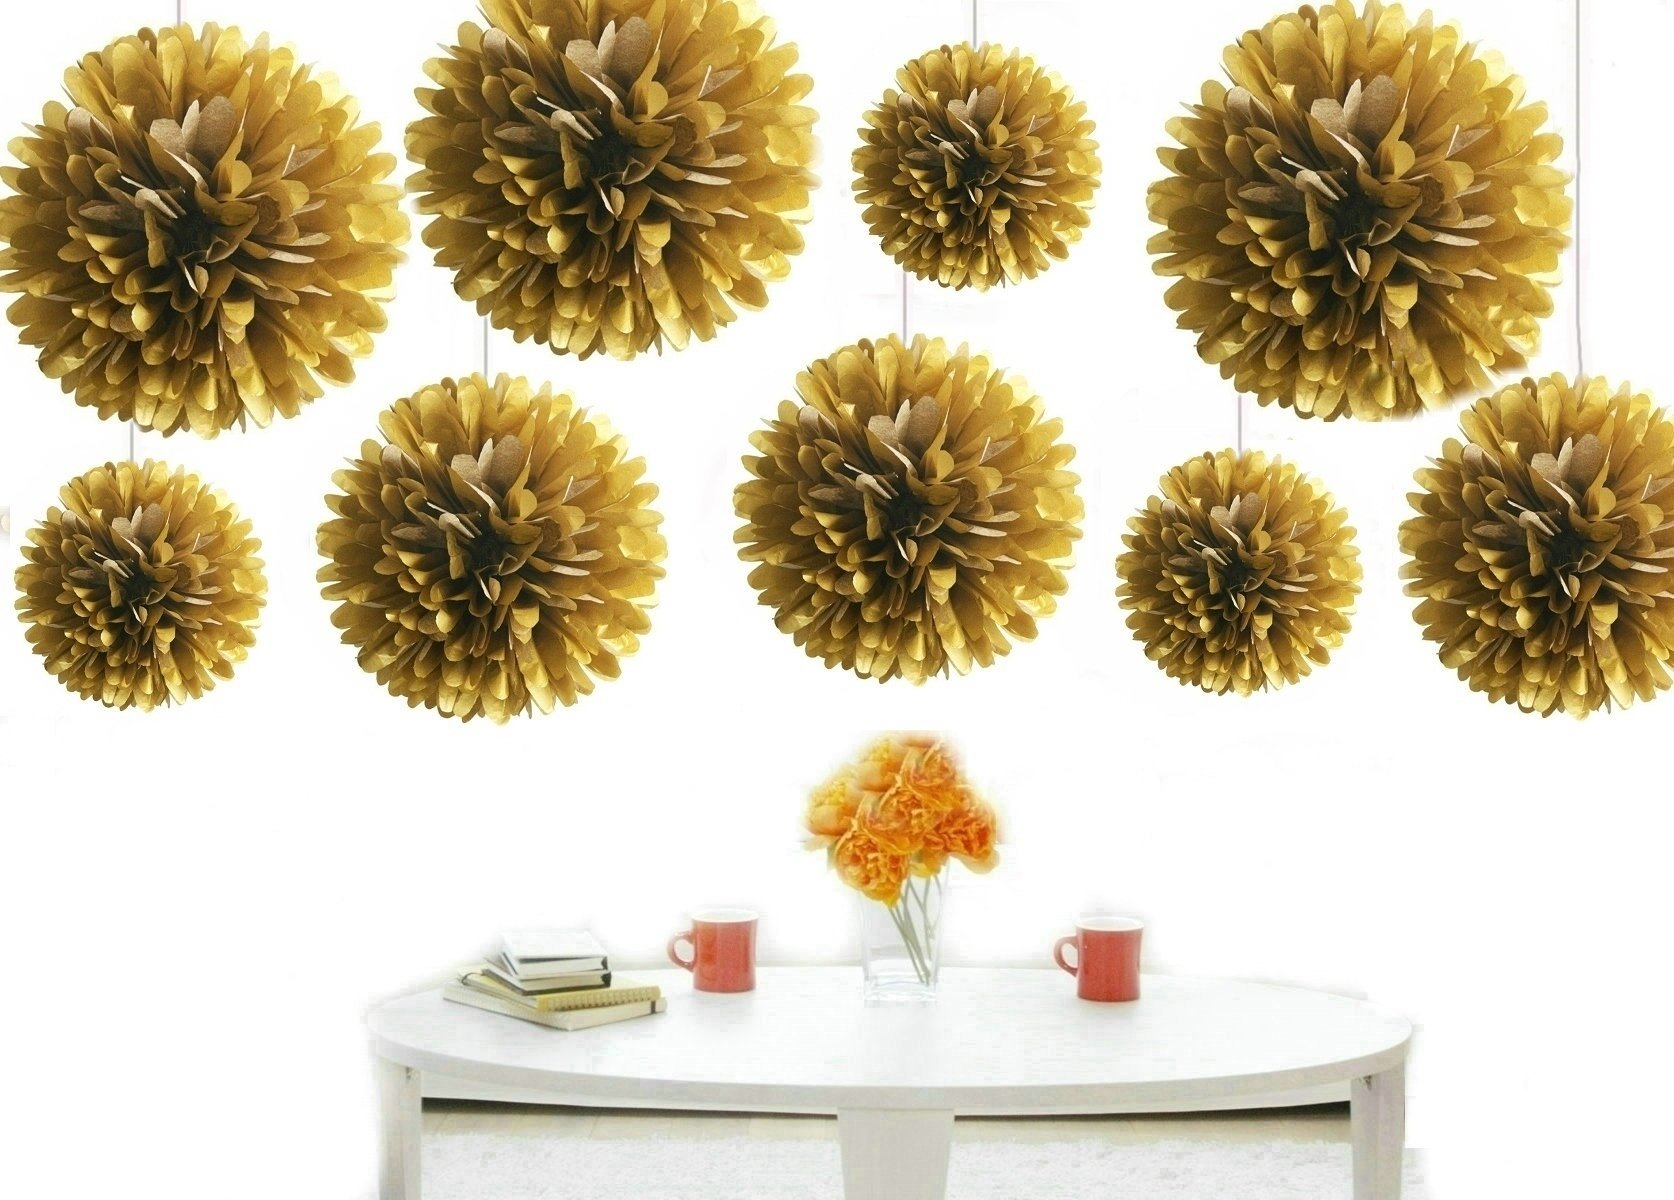 Kubert® 12PCS Mixed 8'' 10'' 14'' Sizes Gold Party Tissue Paper Flower Pom Poms Wedding Pompoms Garland Birthday Party Baby Room Nursery Decoration - Pom Poms Ball Blooms Tissue Paper Flowers by Kubert (Image #1)